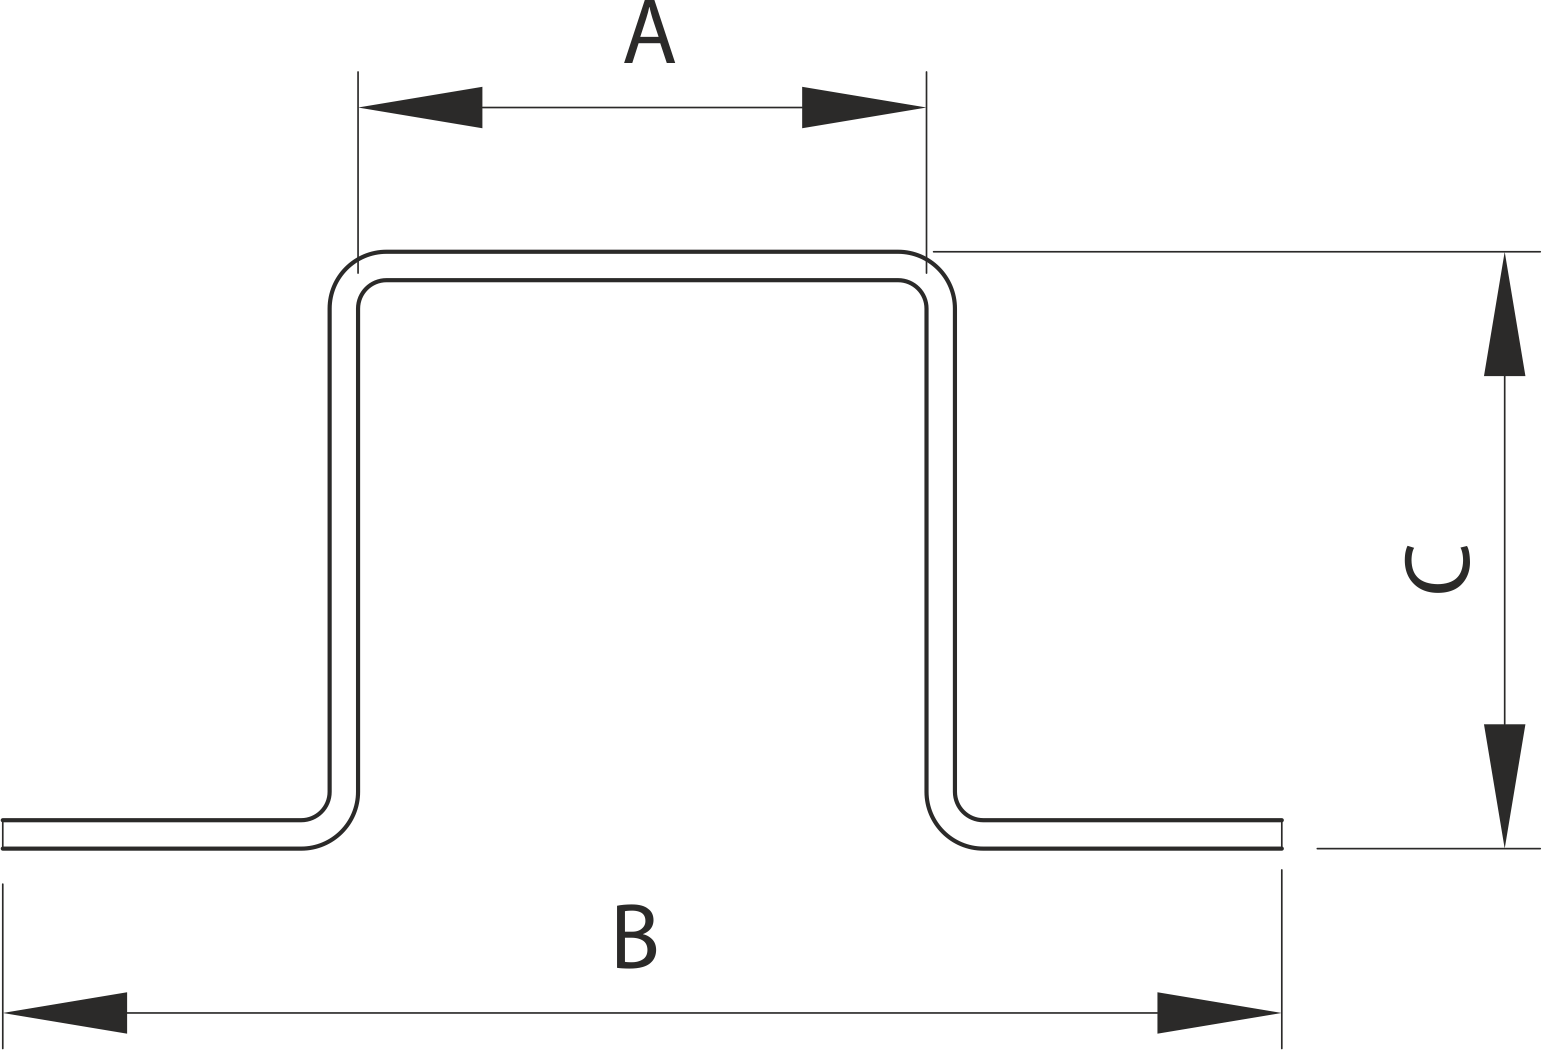 Auxiliary sections Ω